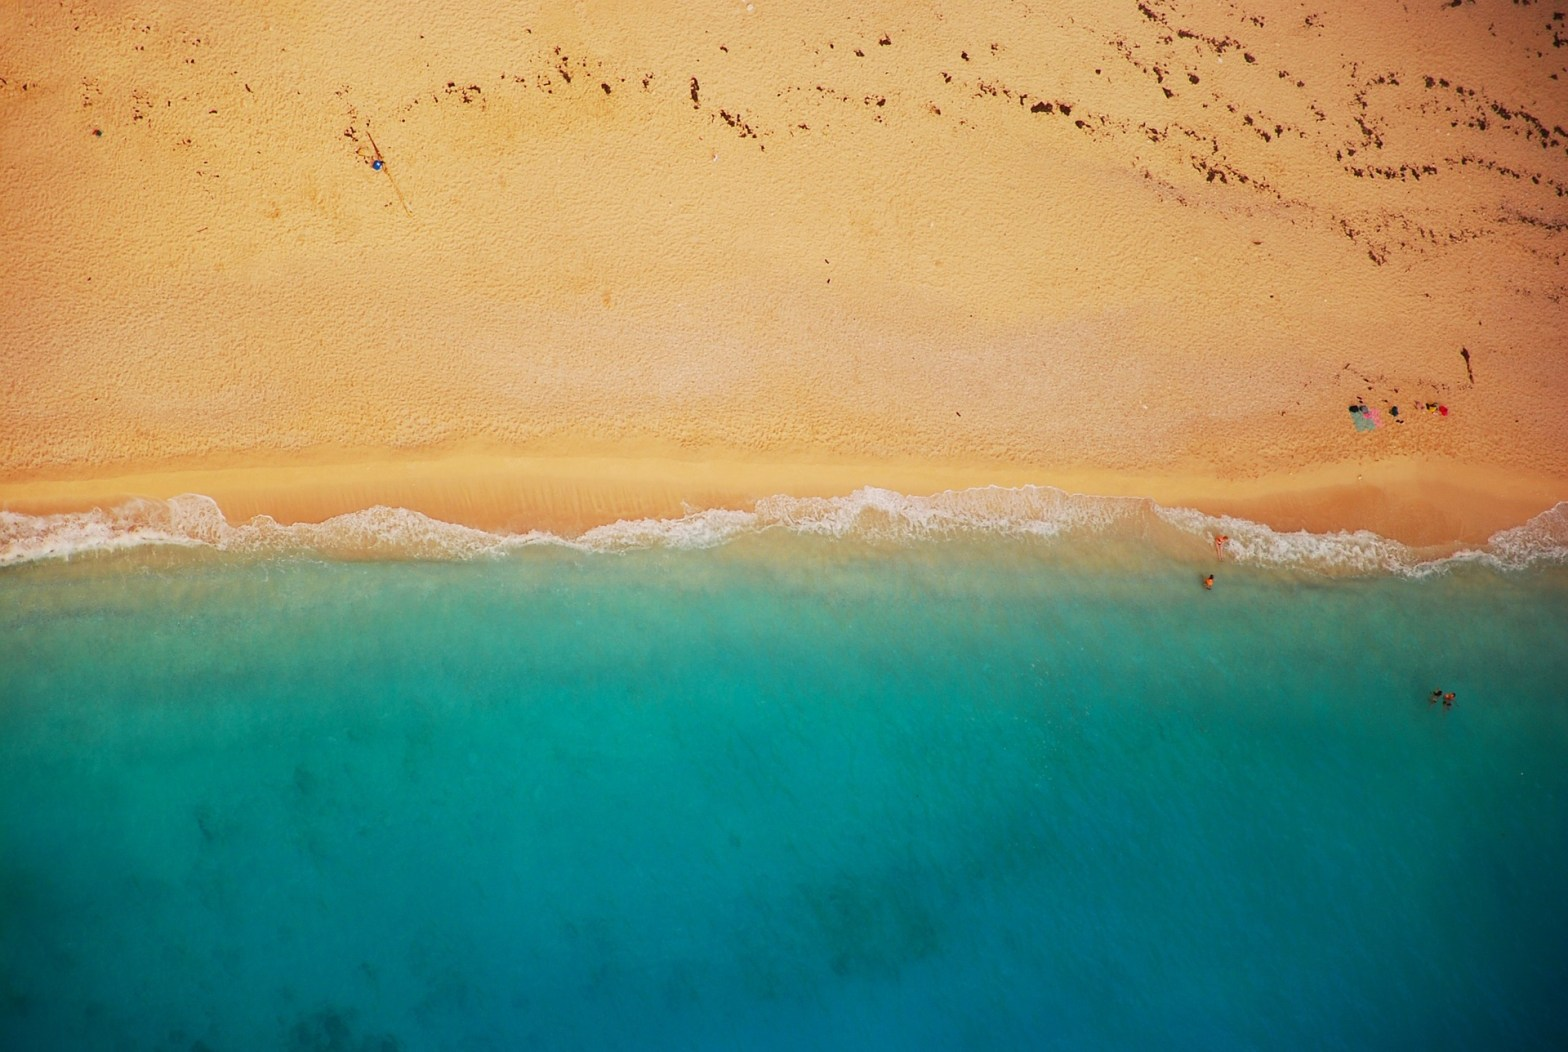 15 Places You Don't Want to Swim